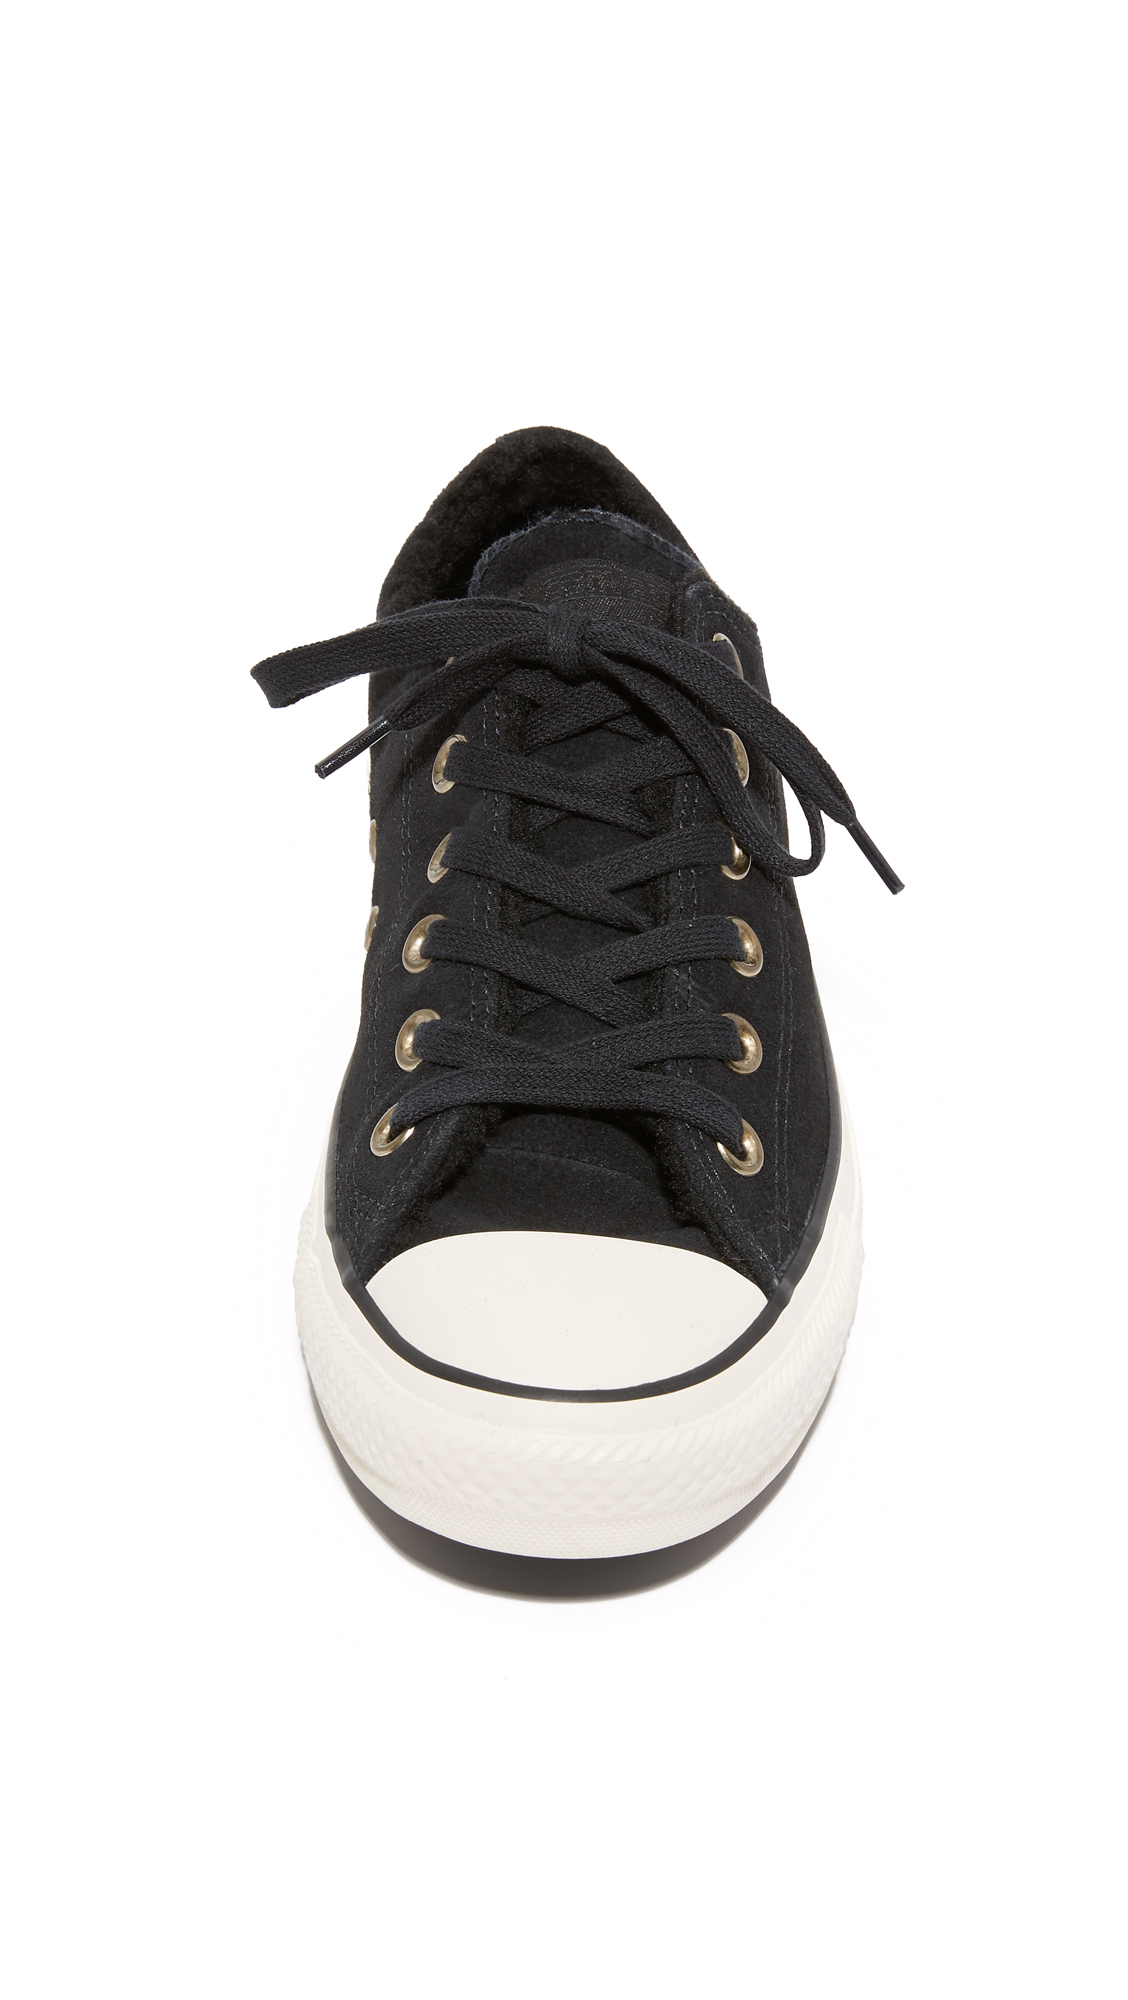 Converse Canvas Chuck Taylor All Star Sherpa Sneakers